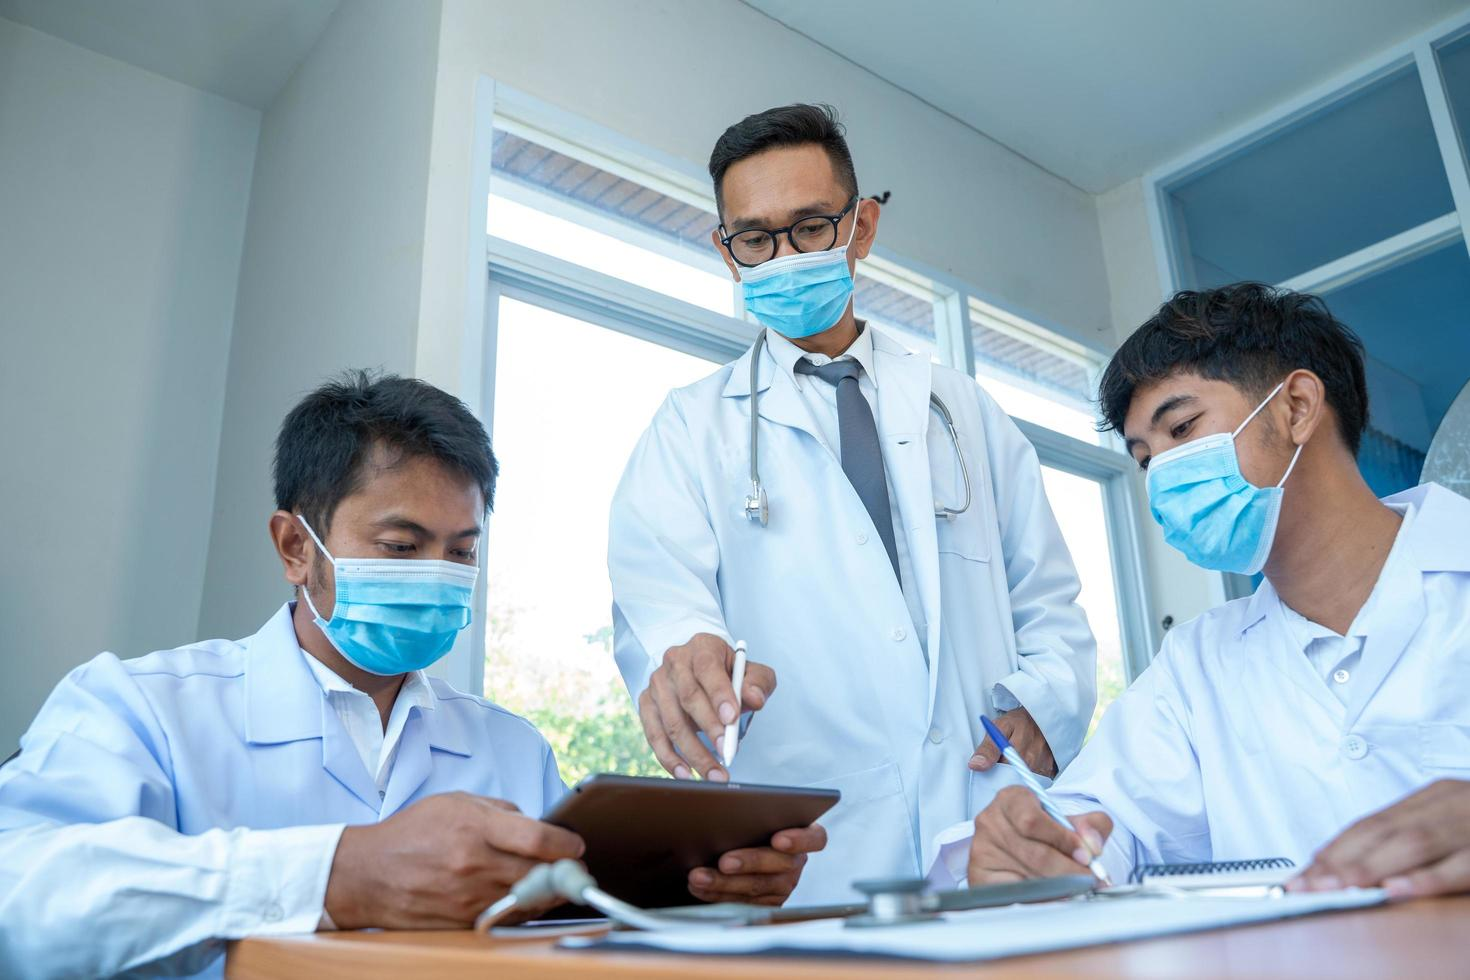 Men with lab coats and face masks photo